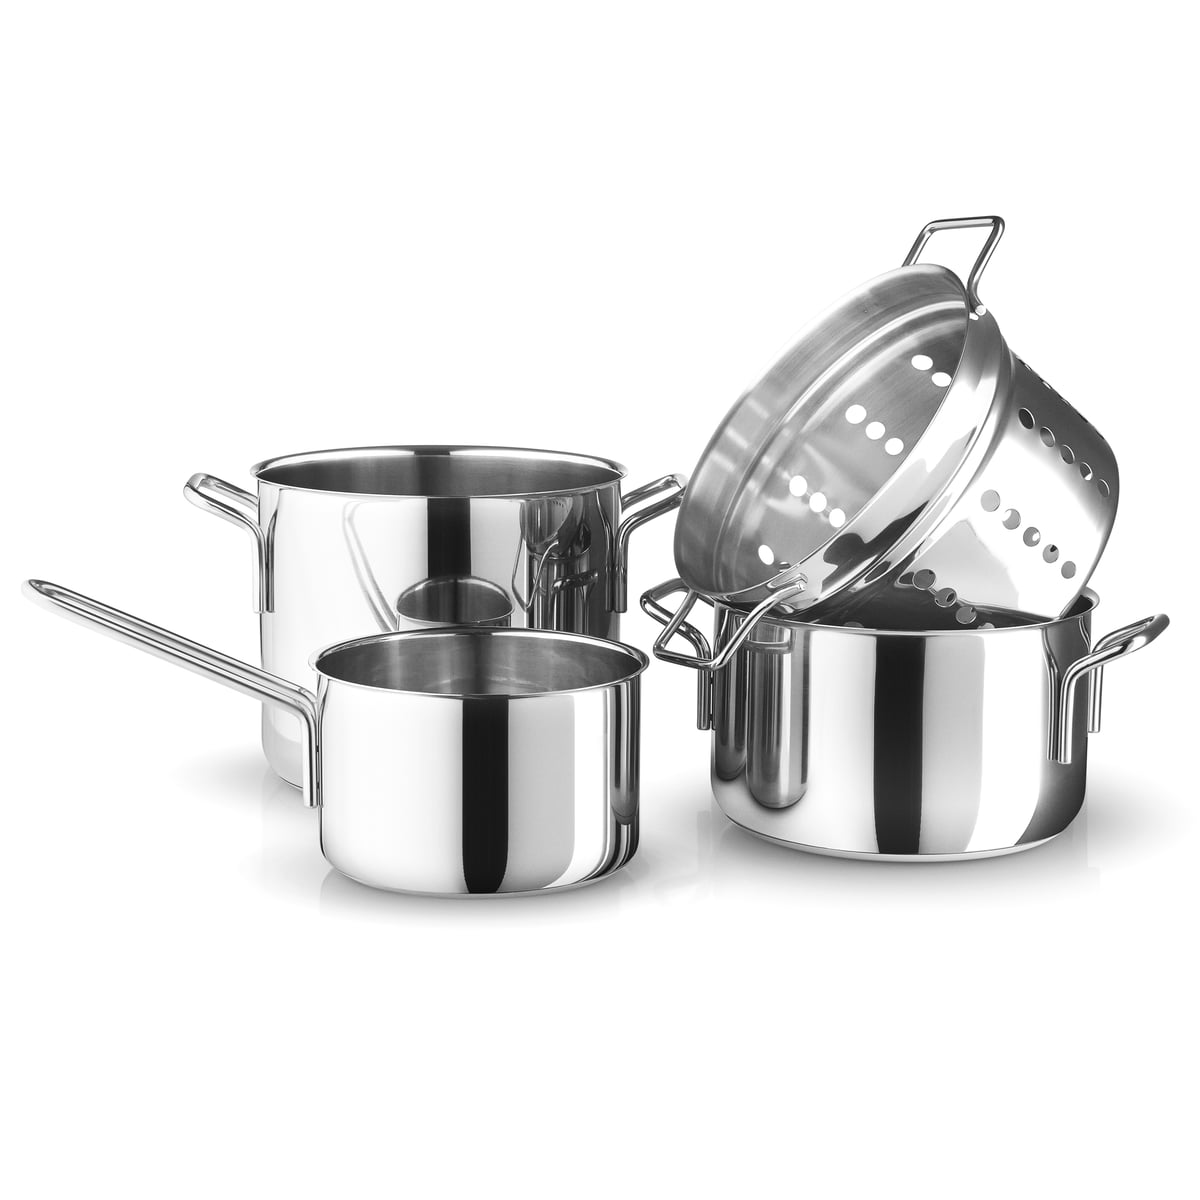 Stainless Steel Pot Set By Eva Trio In Our Shop